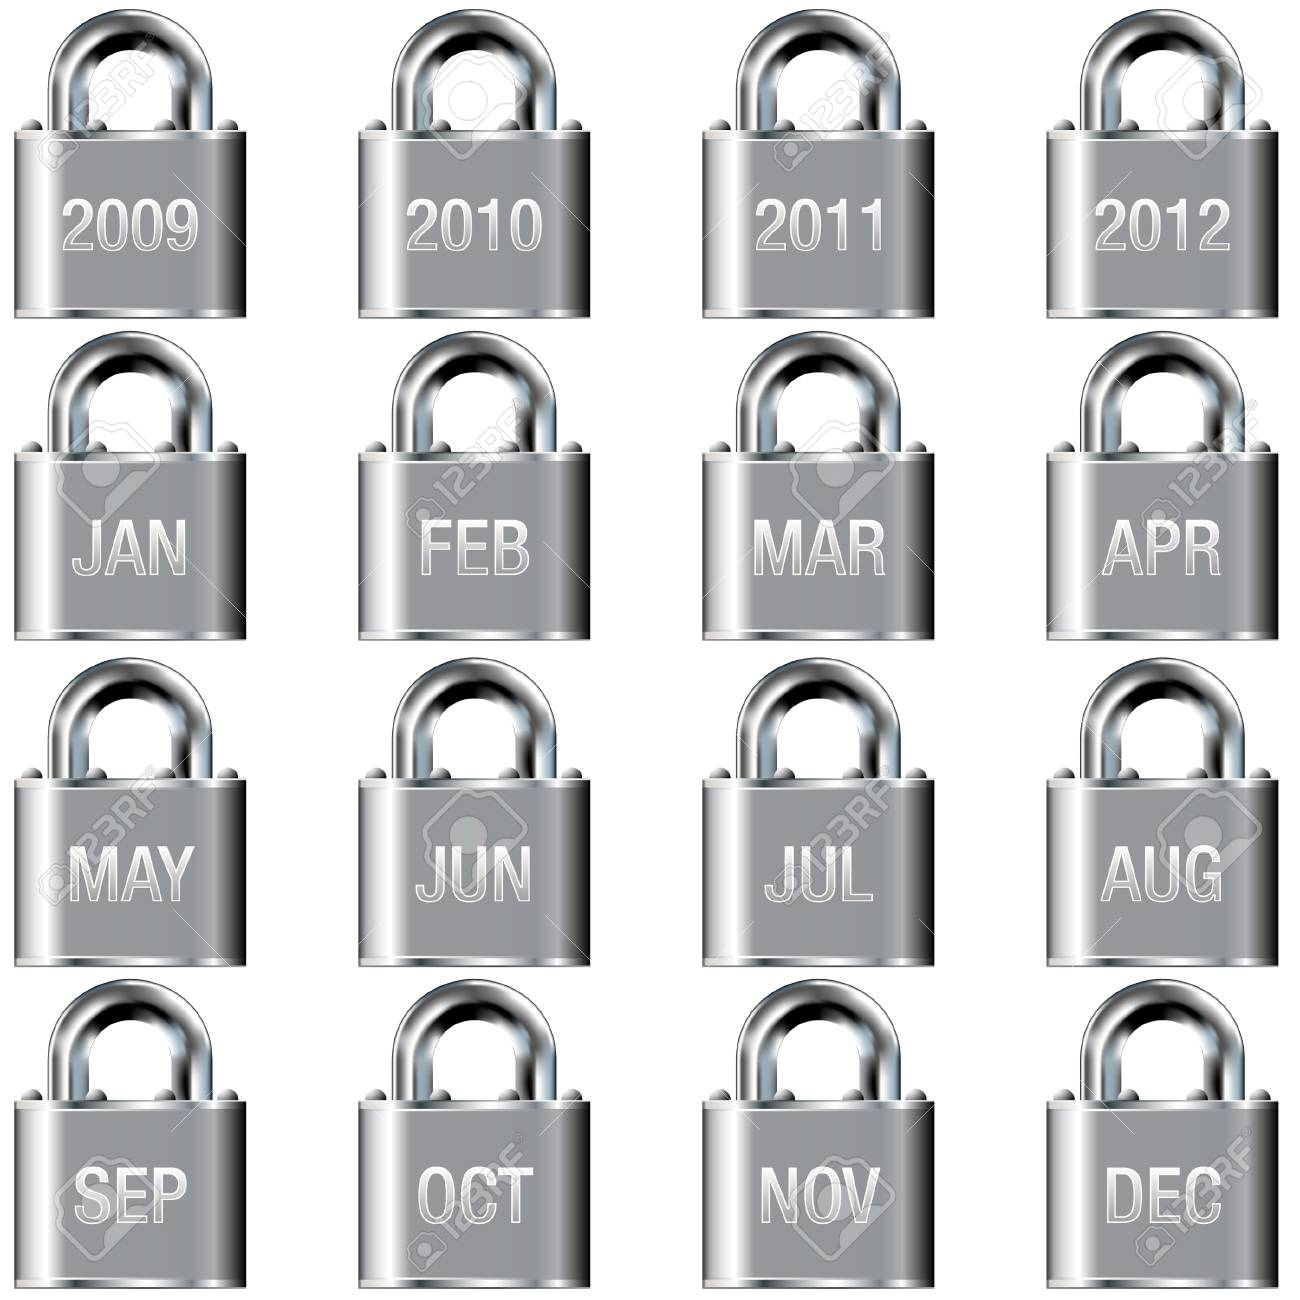 Month and year calendar icons on secure padlock vector buttons Stock Vector - 4695265